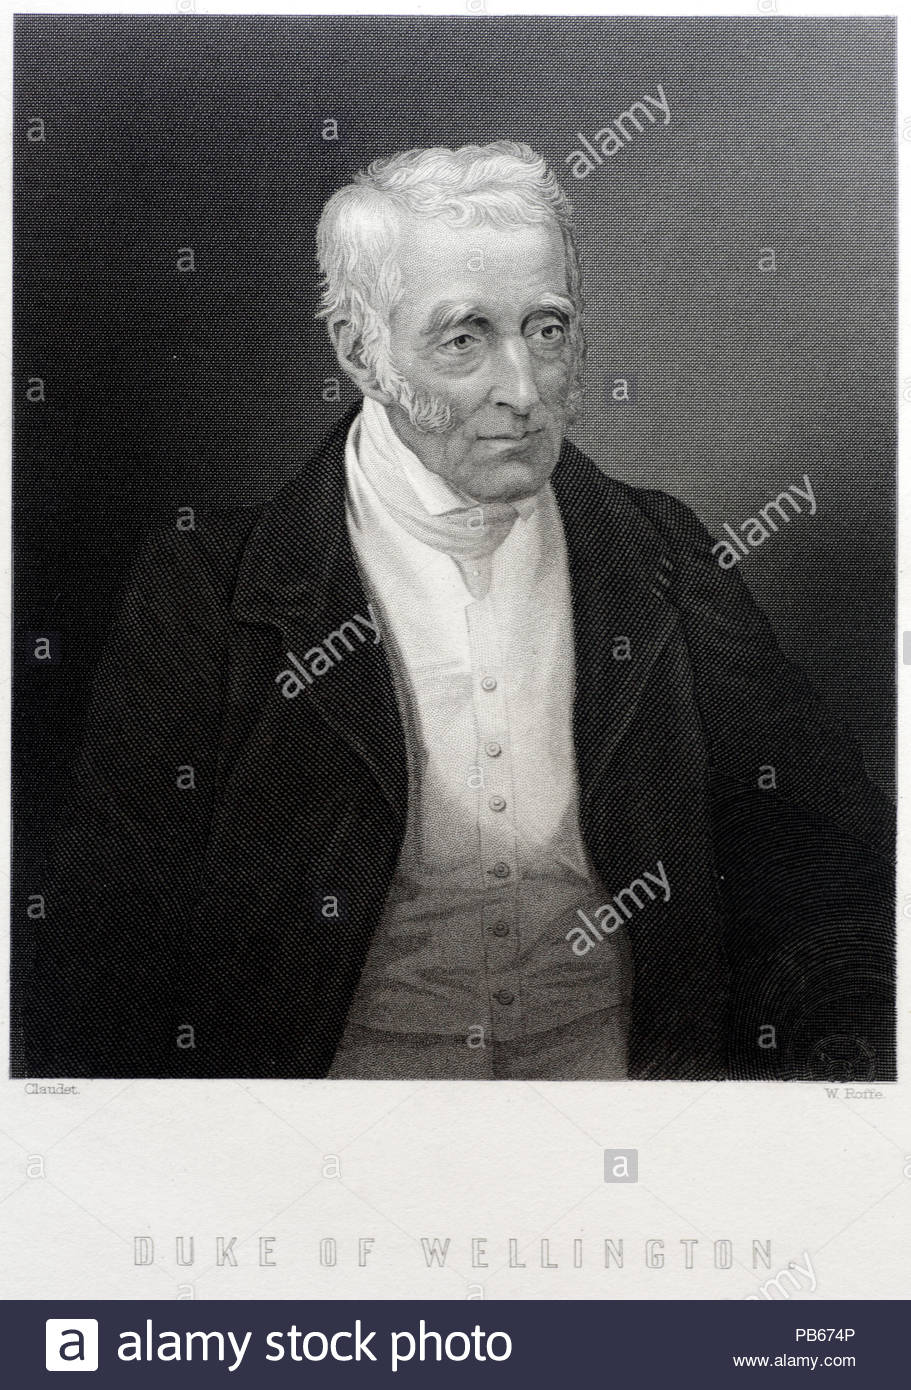 Arthur Wellesley, Duke of Wellington portrait, 1769 – 1852 was an Anglo-Irish soldier and statesman who was one of the leading military and political figures of 19th-century Britain, serving twice as Prime Minister, antique engraving from 1884 - Stock Image